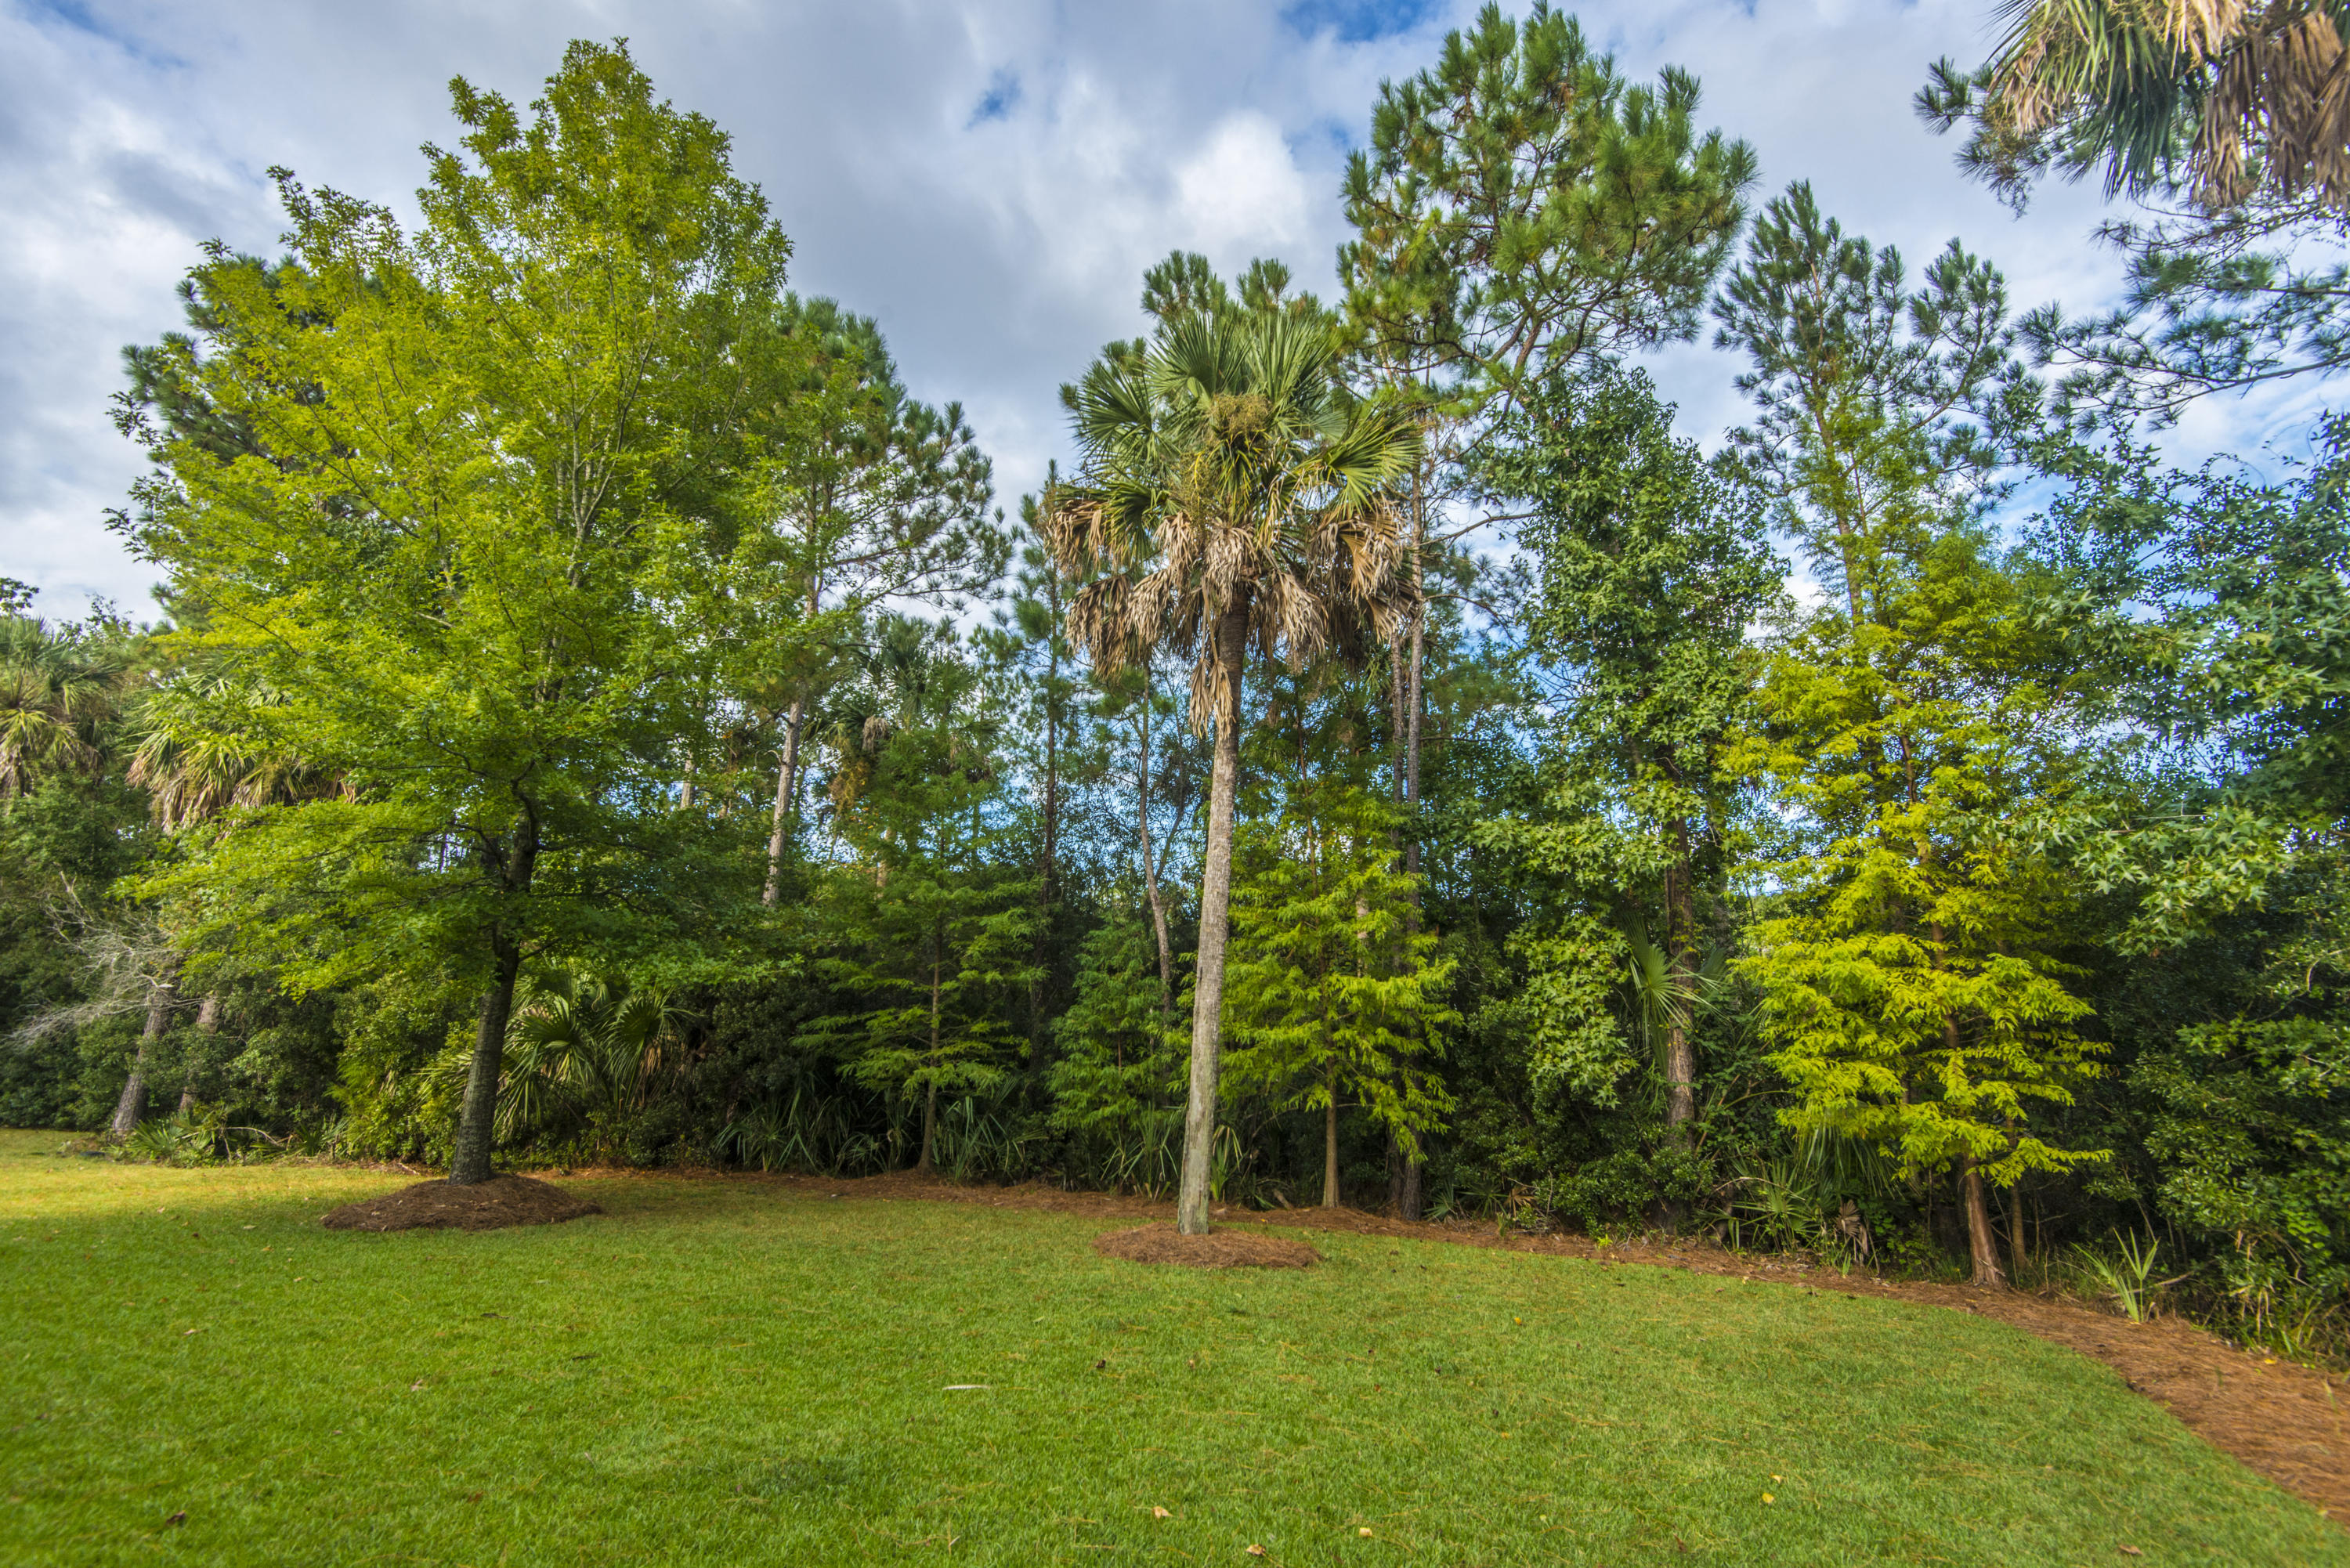 Planters Pointe Homes For Sale - 2605 Ringsted Lane, Mount Pleasant, SC - 20